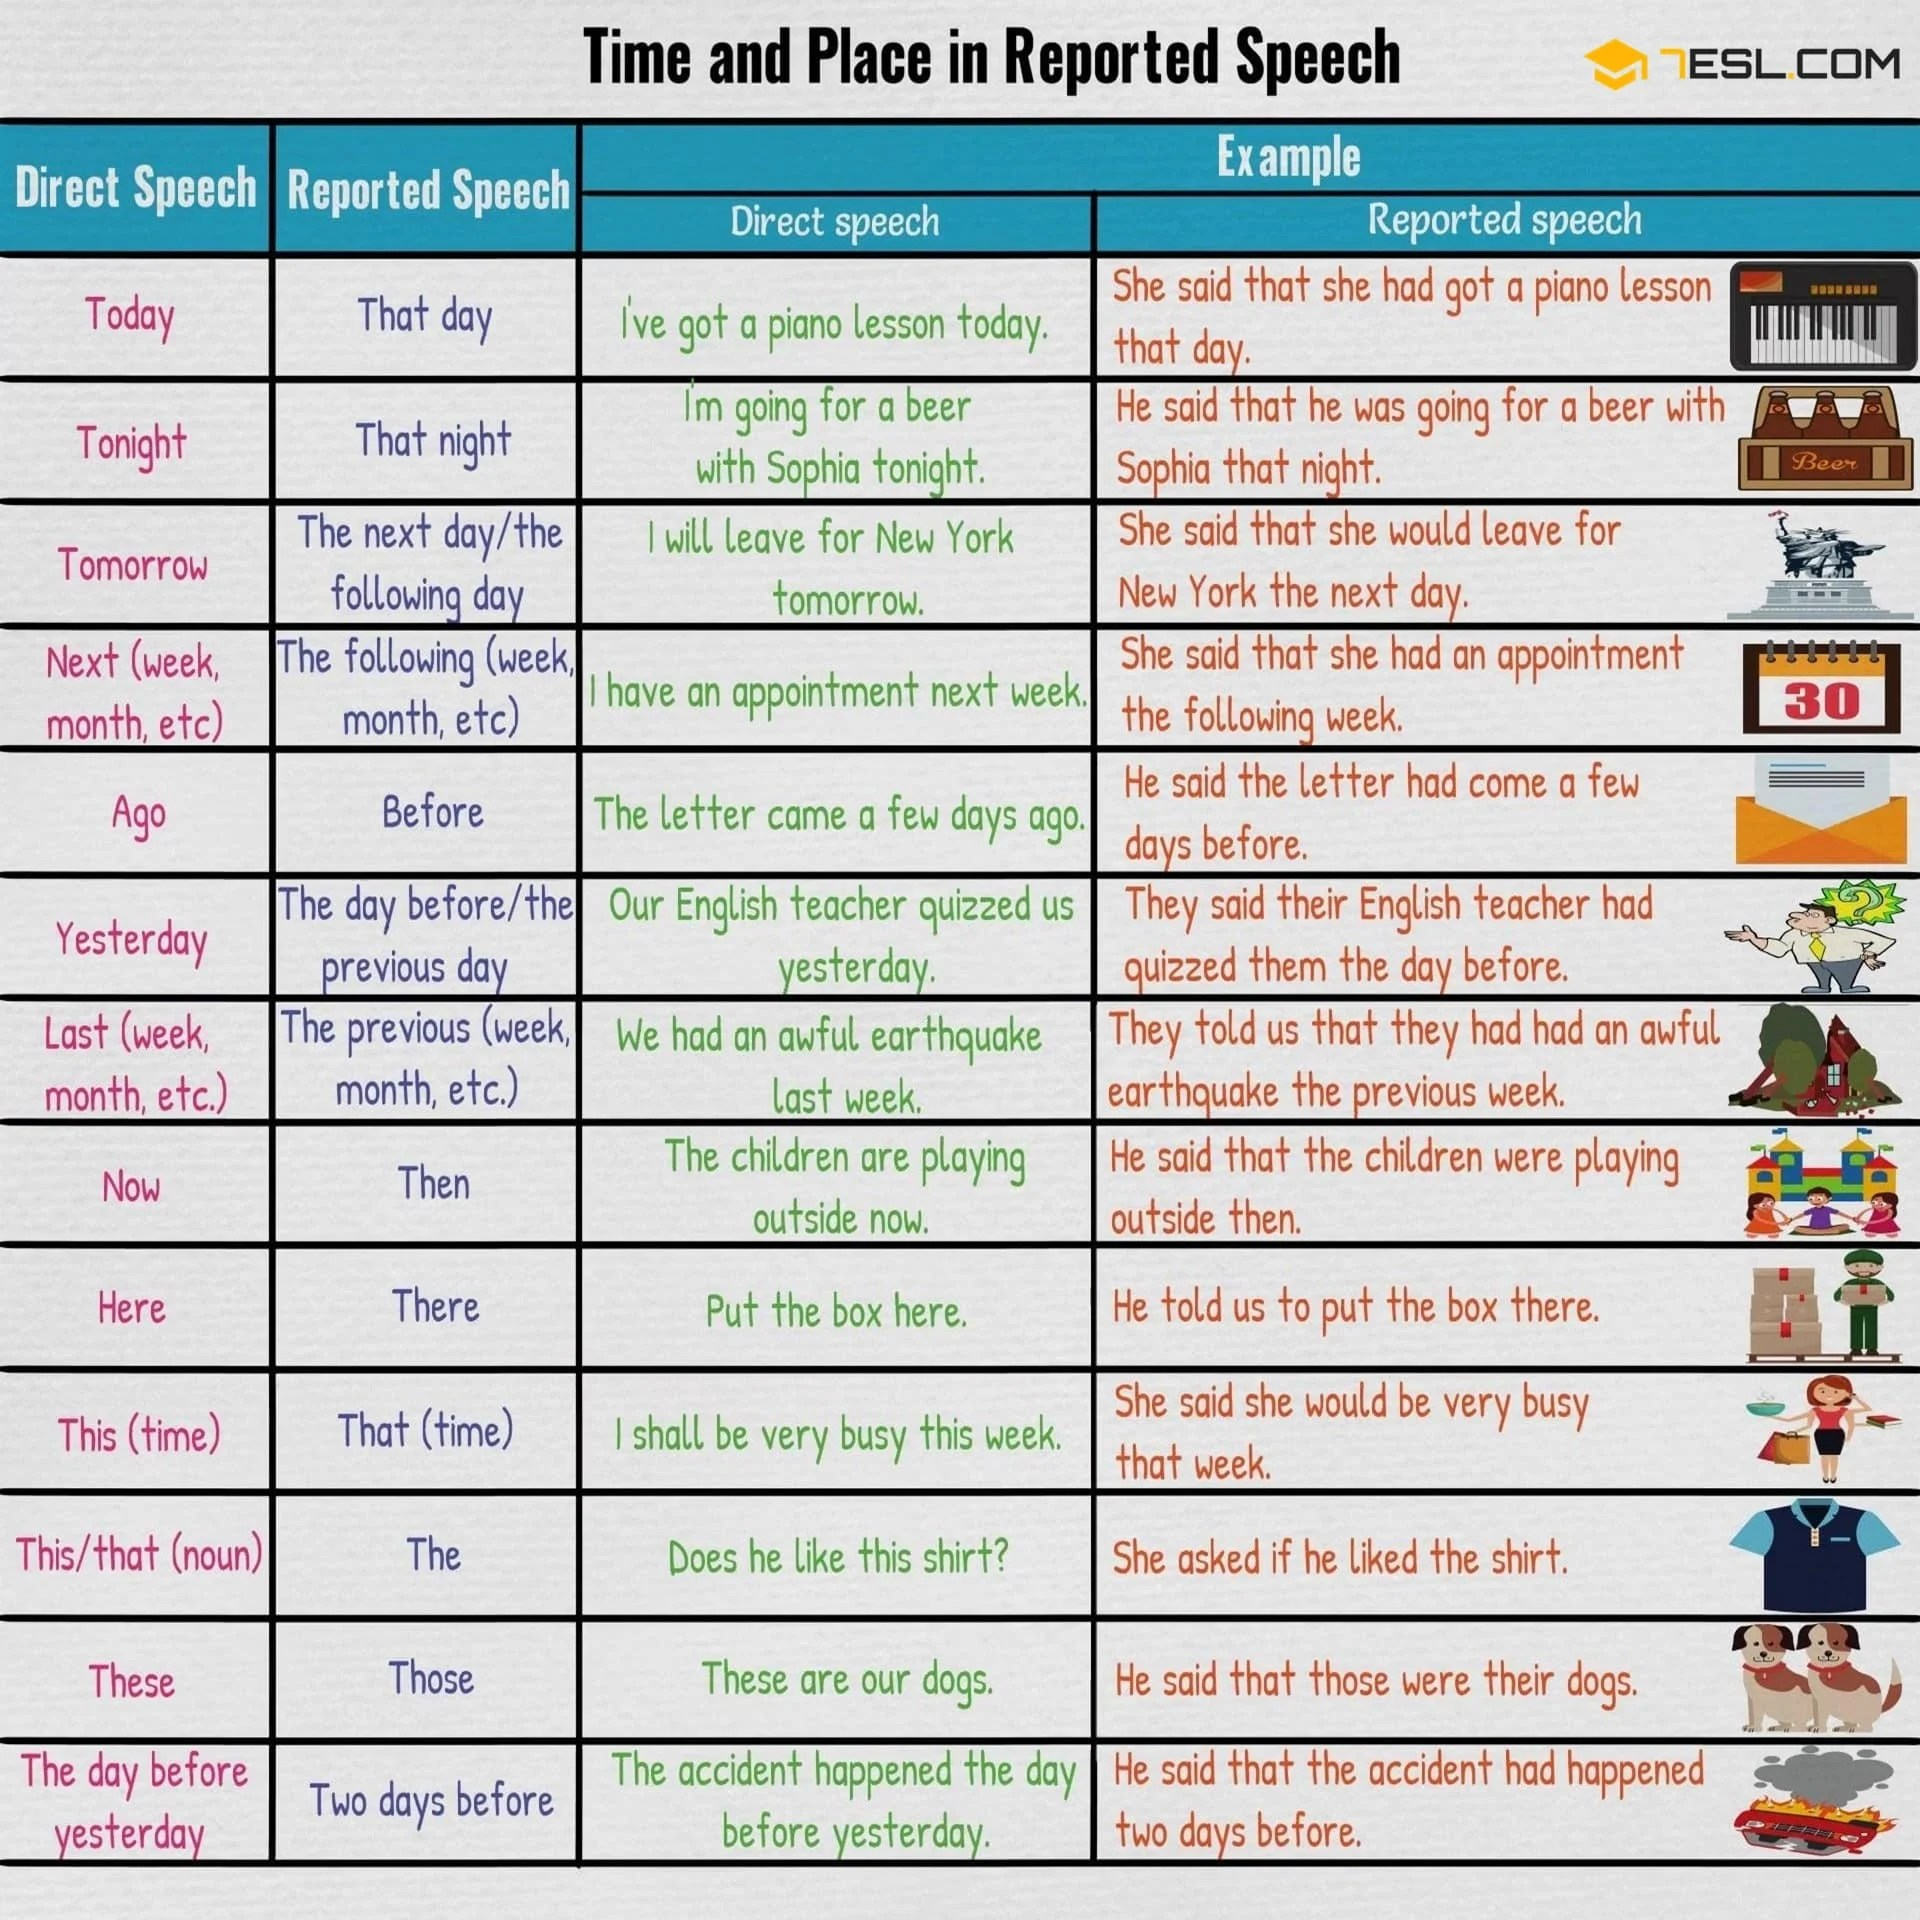 Changes In Time And Place In Reported Speech